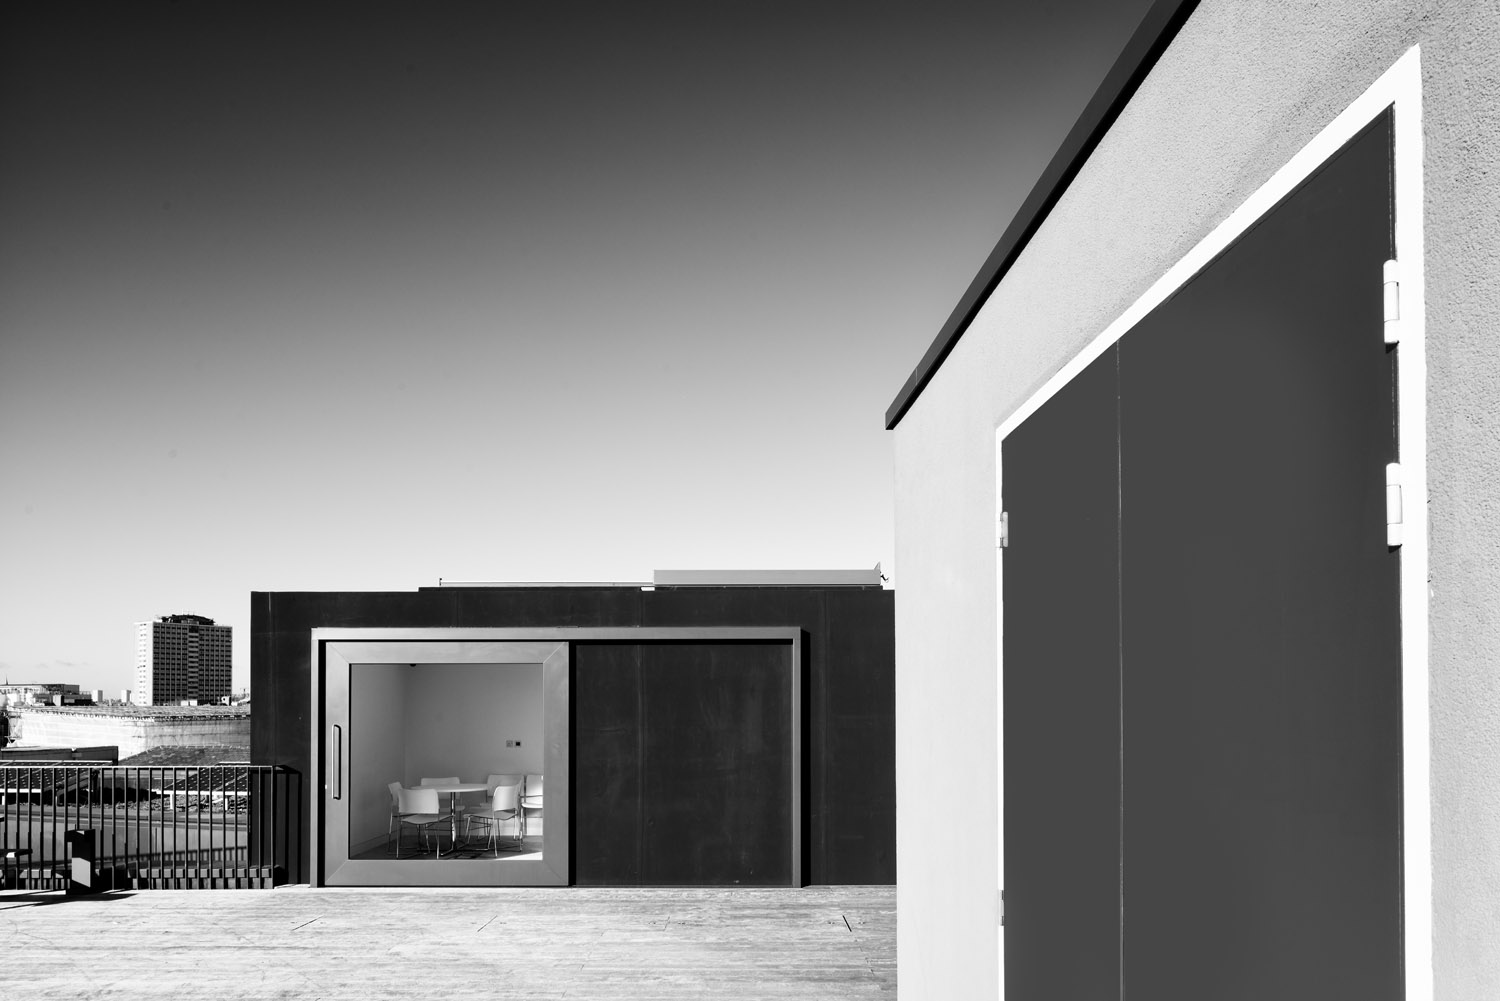 AHMM Office by Architectural Photographer Joas Souza